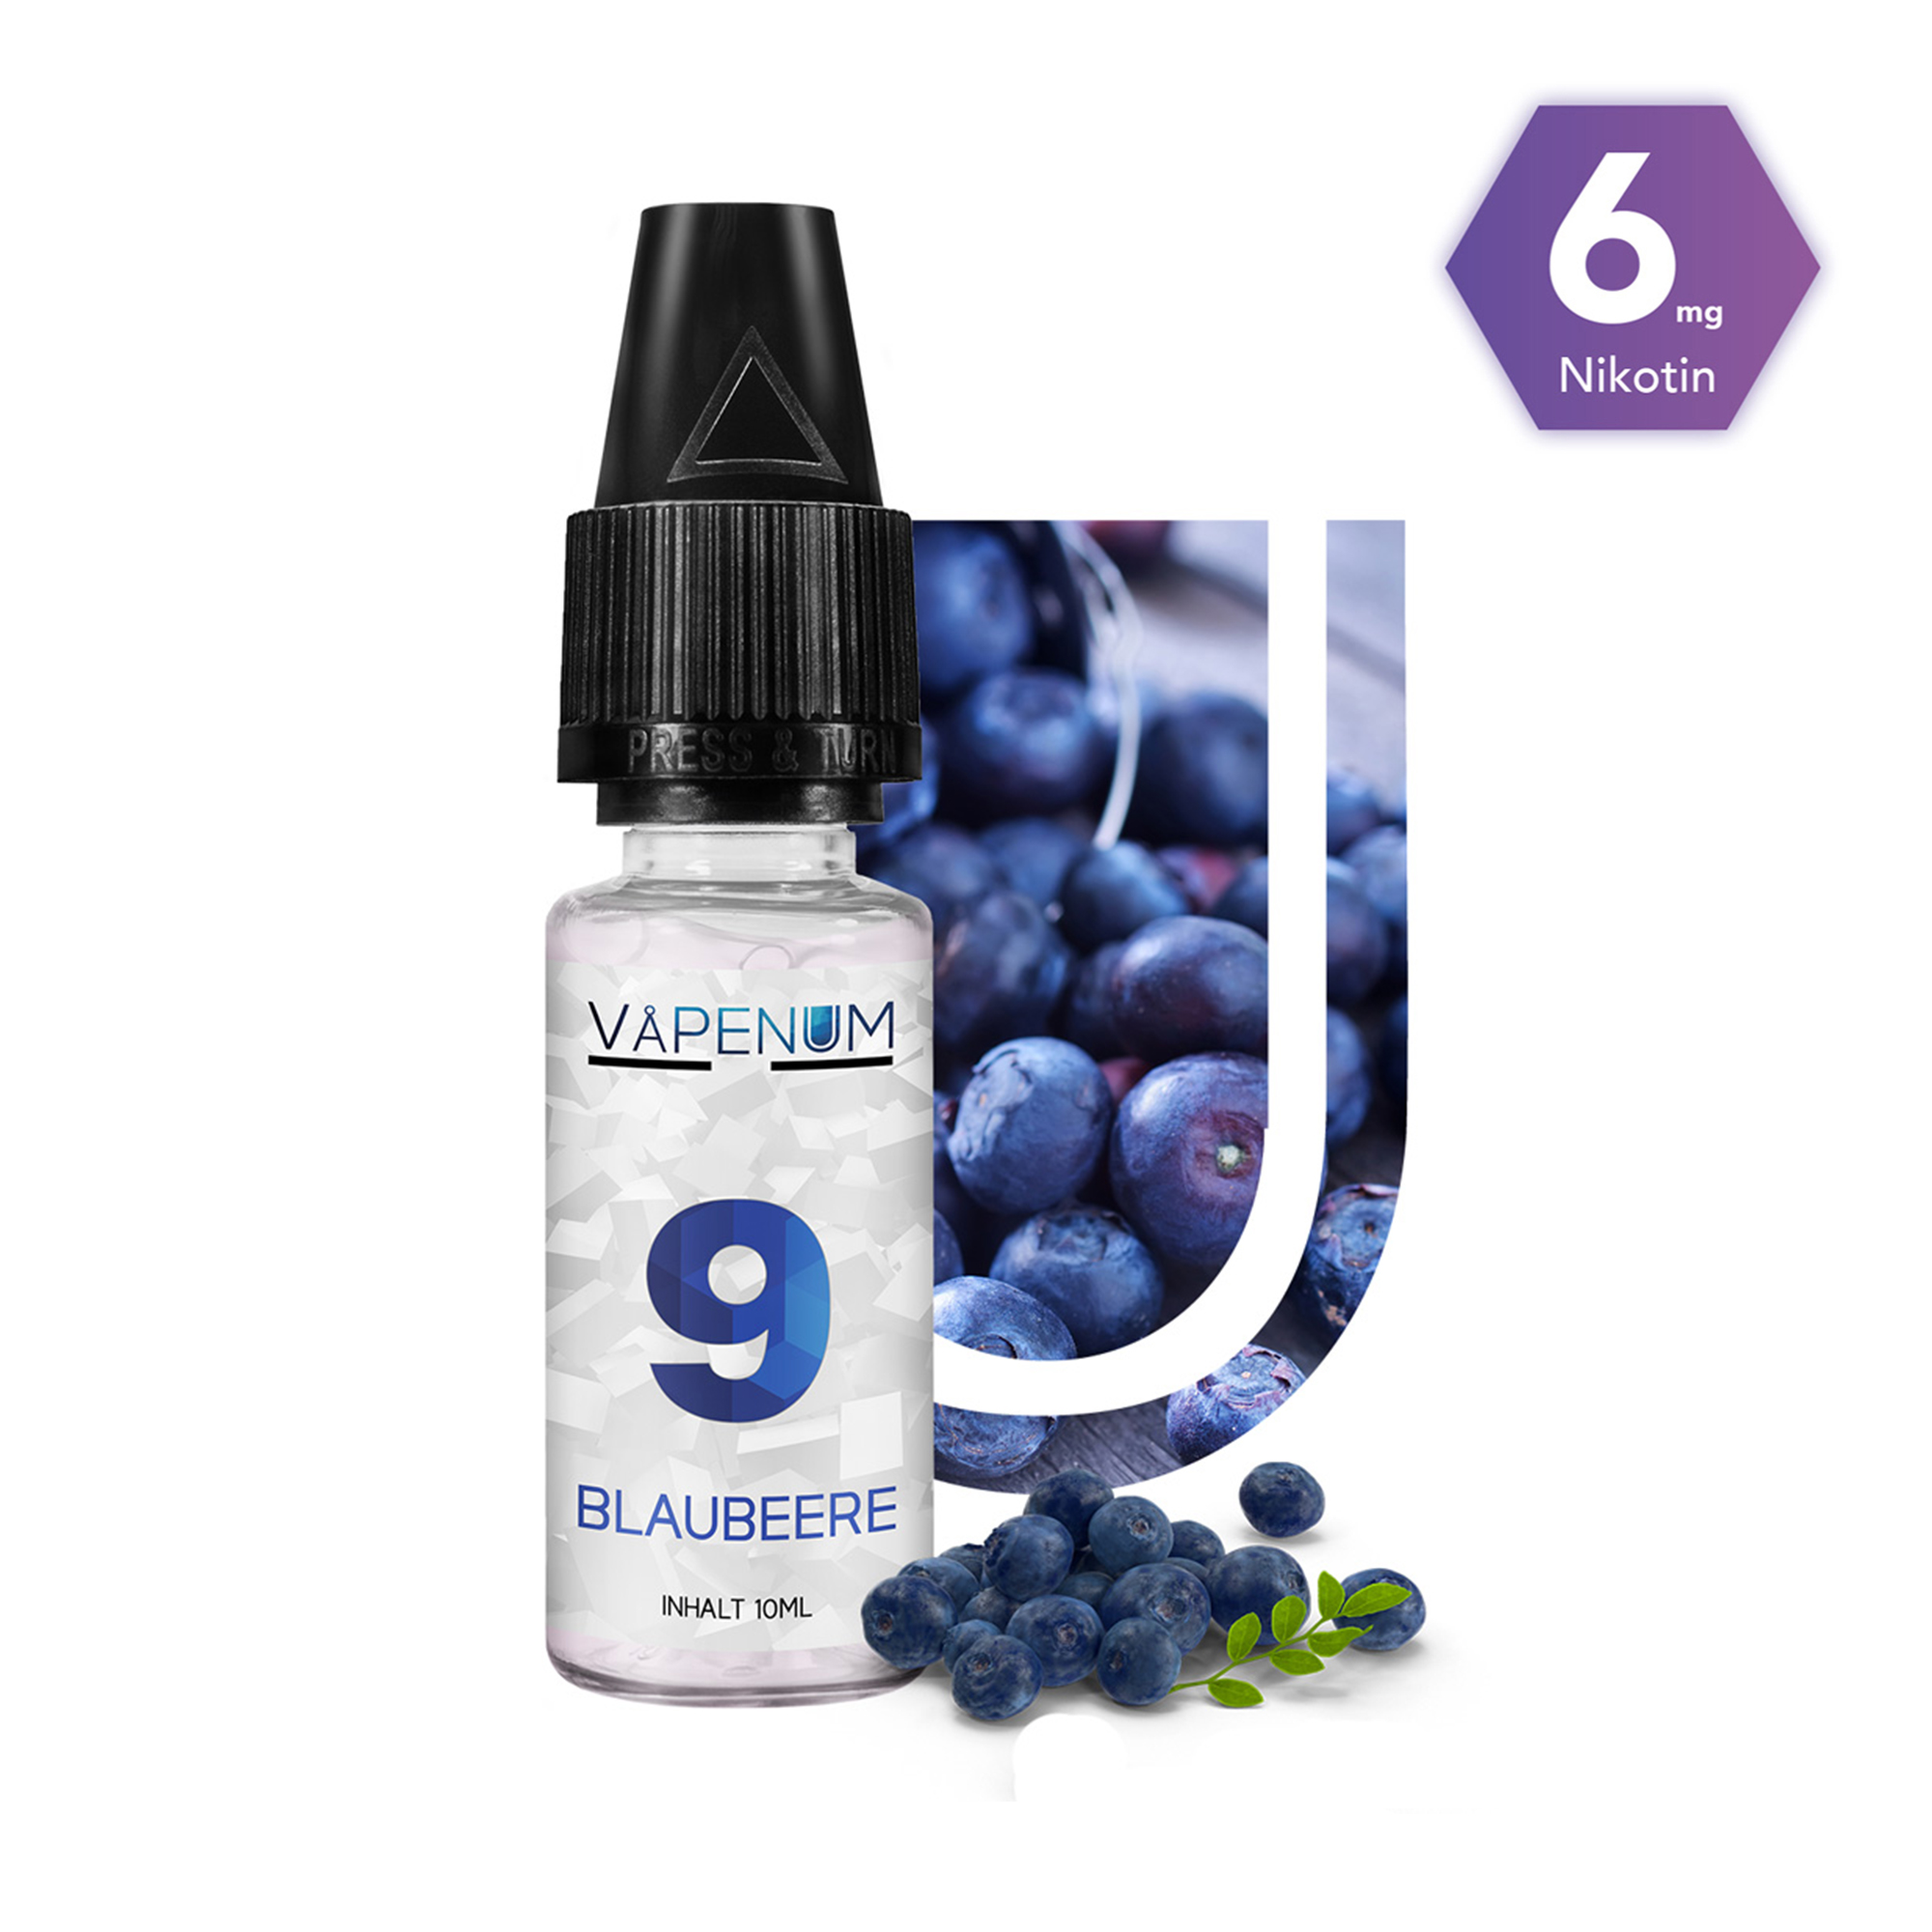 9 - Blaubeere Liquid by Vapenum 6mg